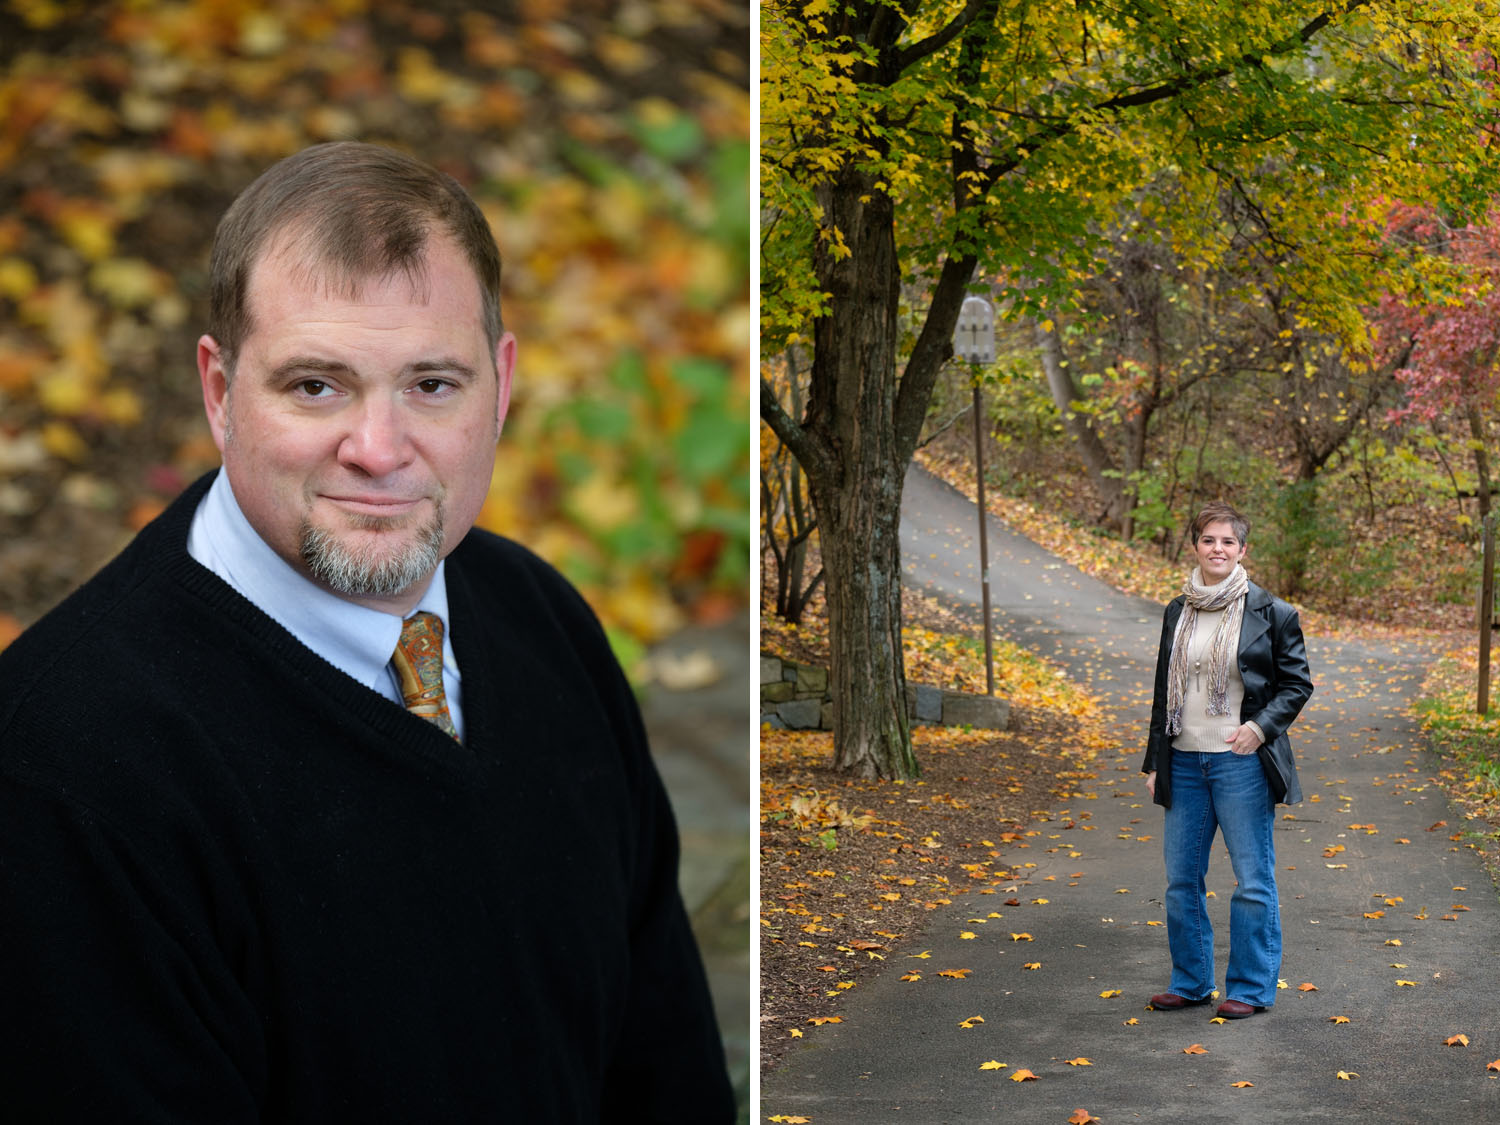 Fall business photos at Lake Anne Plaza in Reston, Virginia